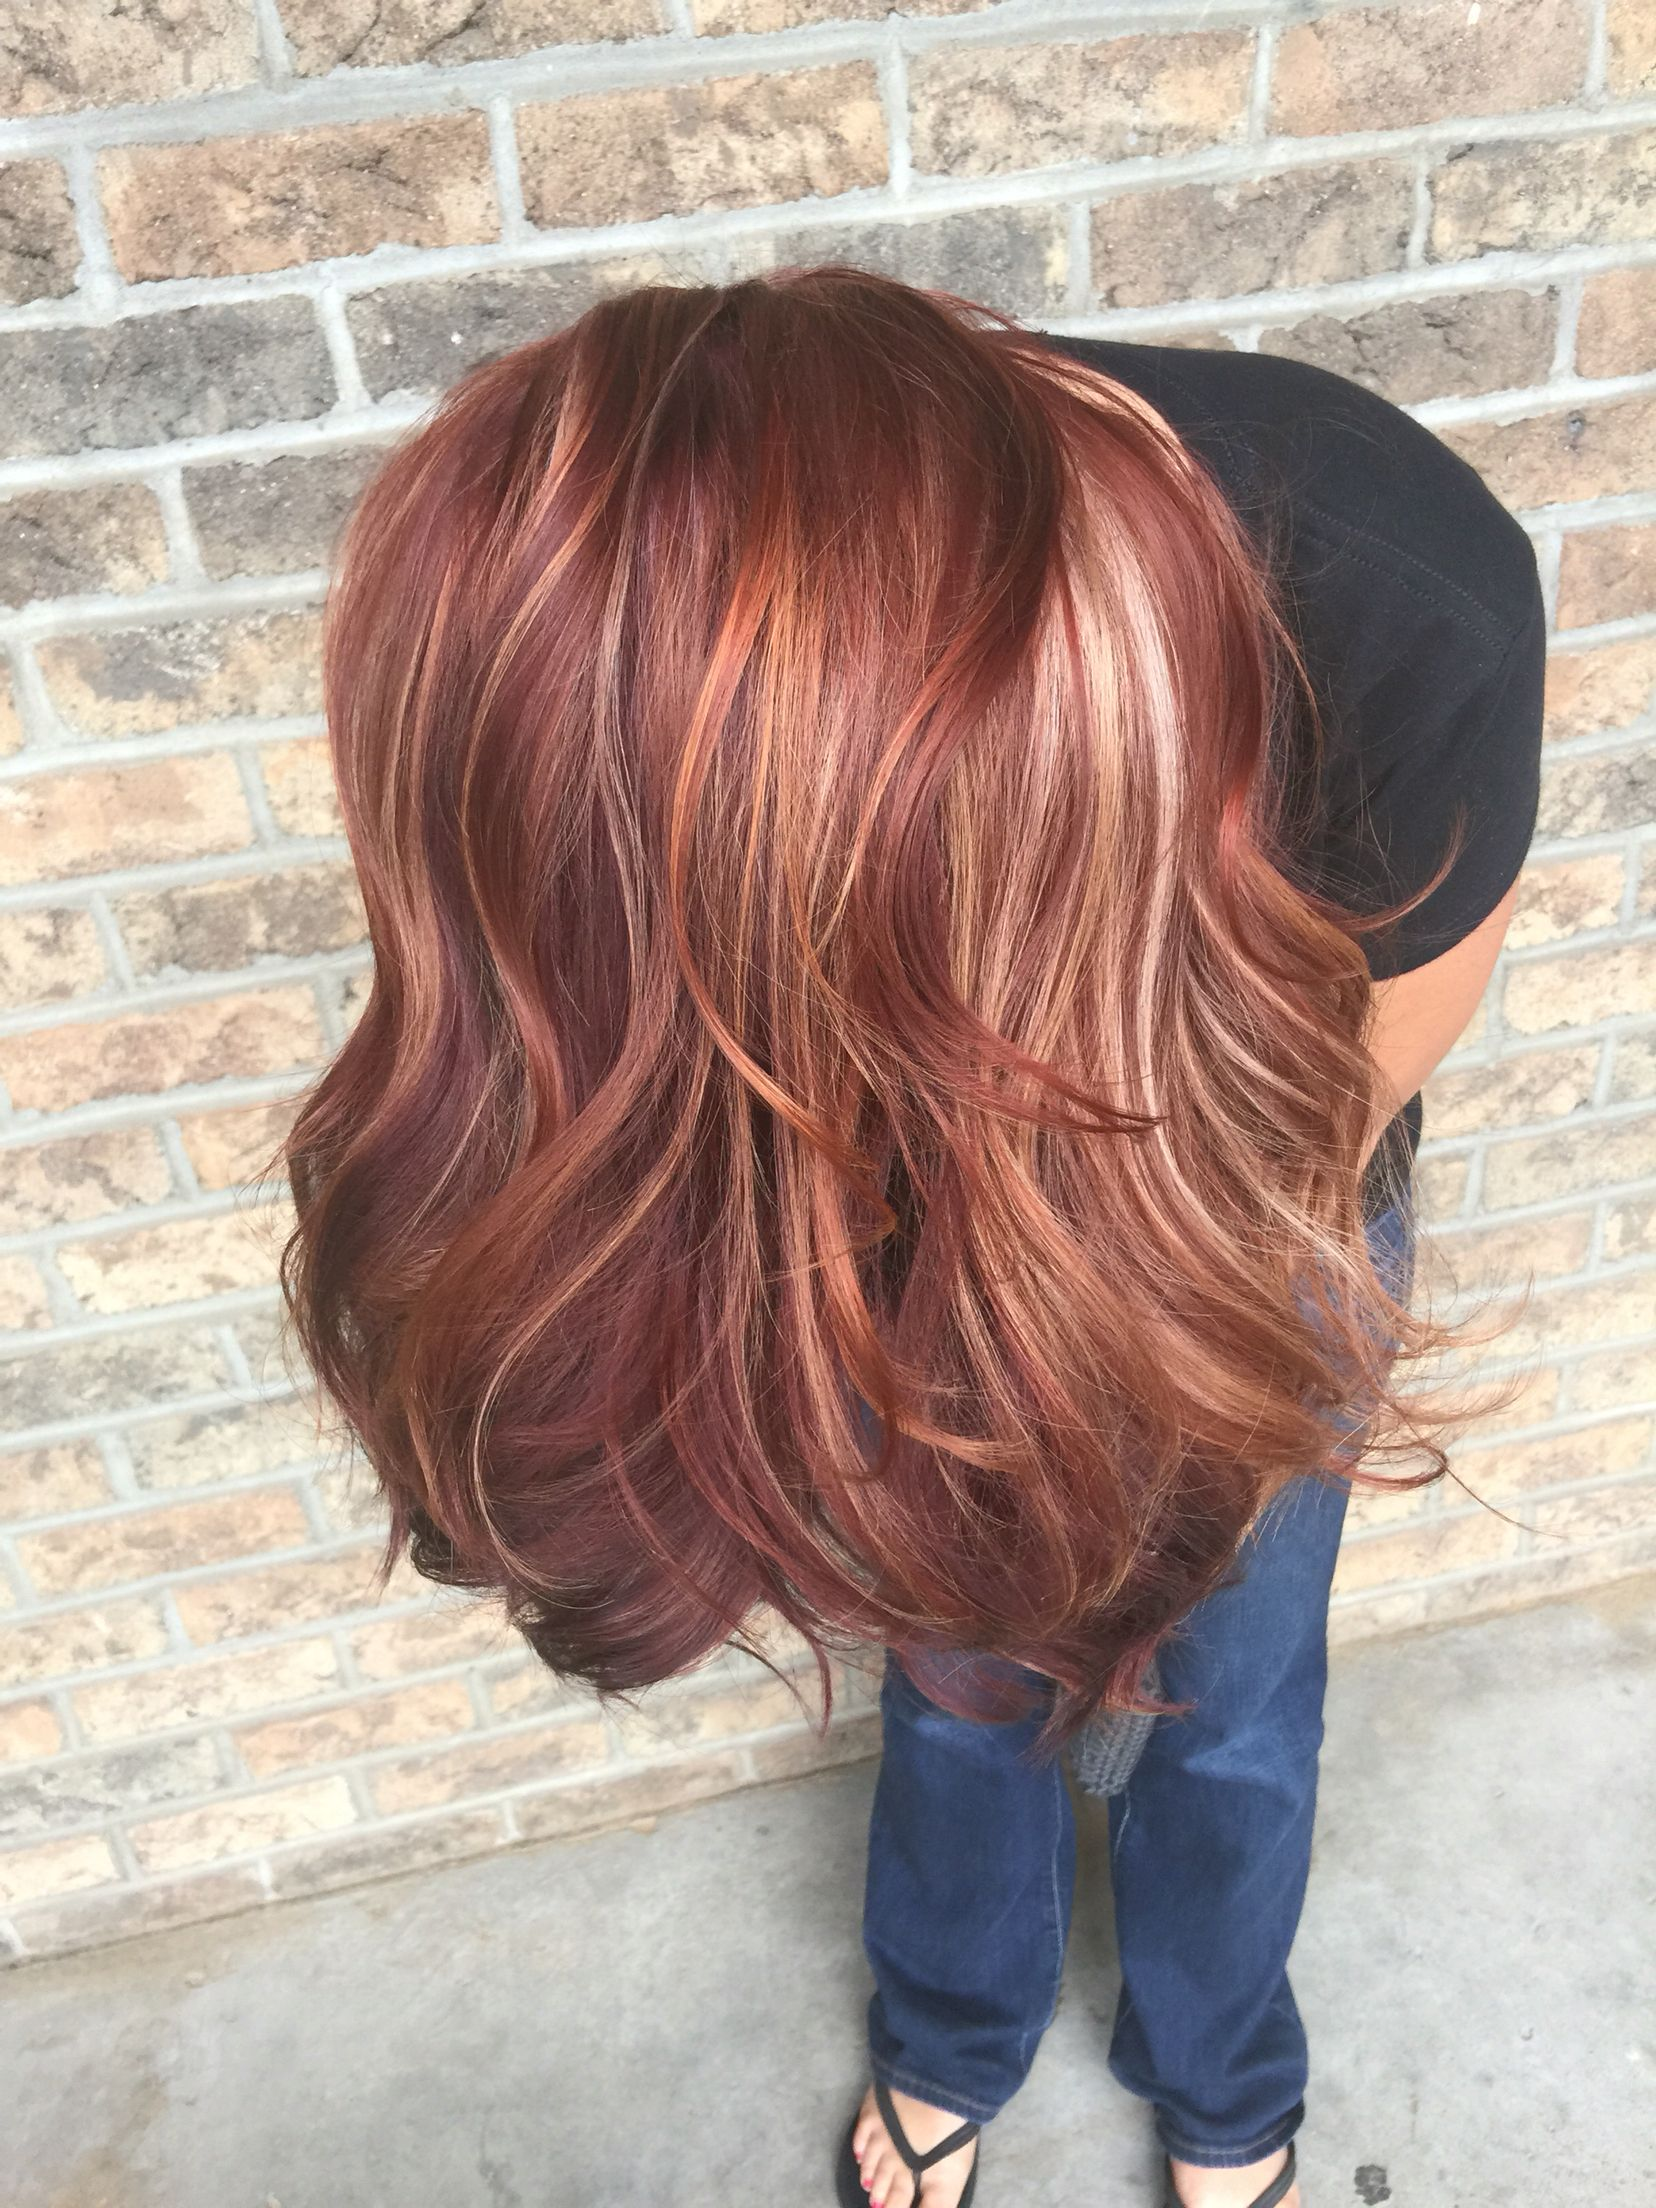 all the fall hair colors!! red, blonde, red violet, copper